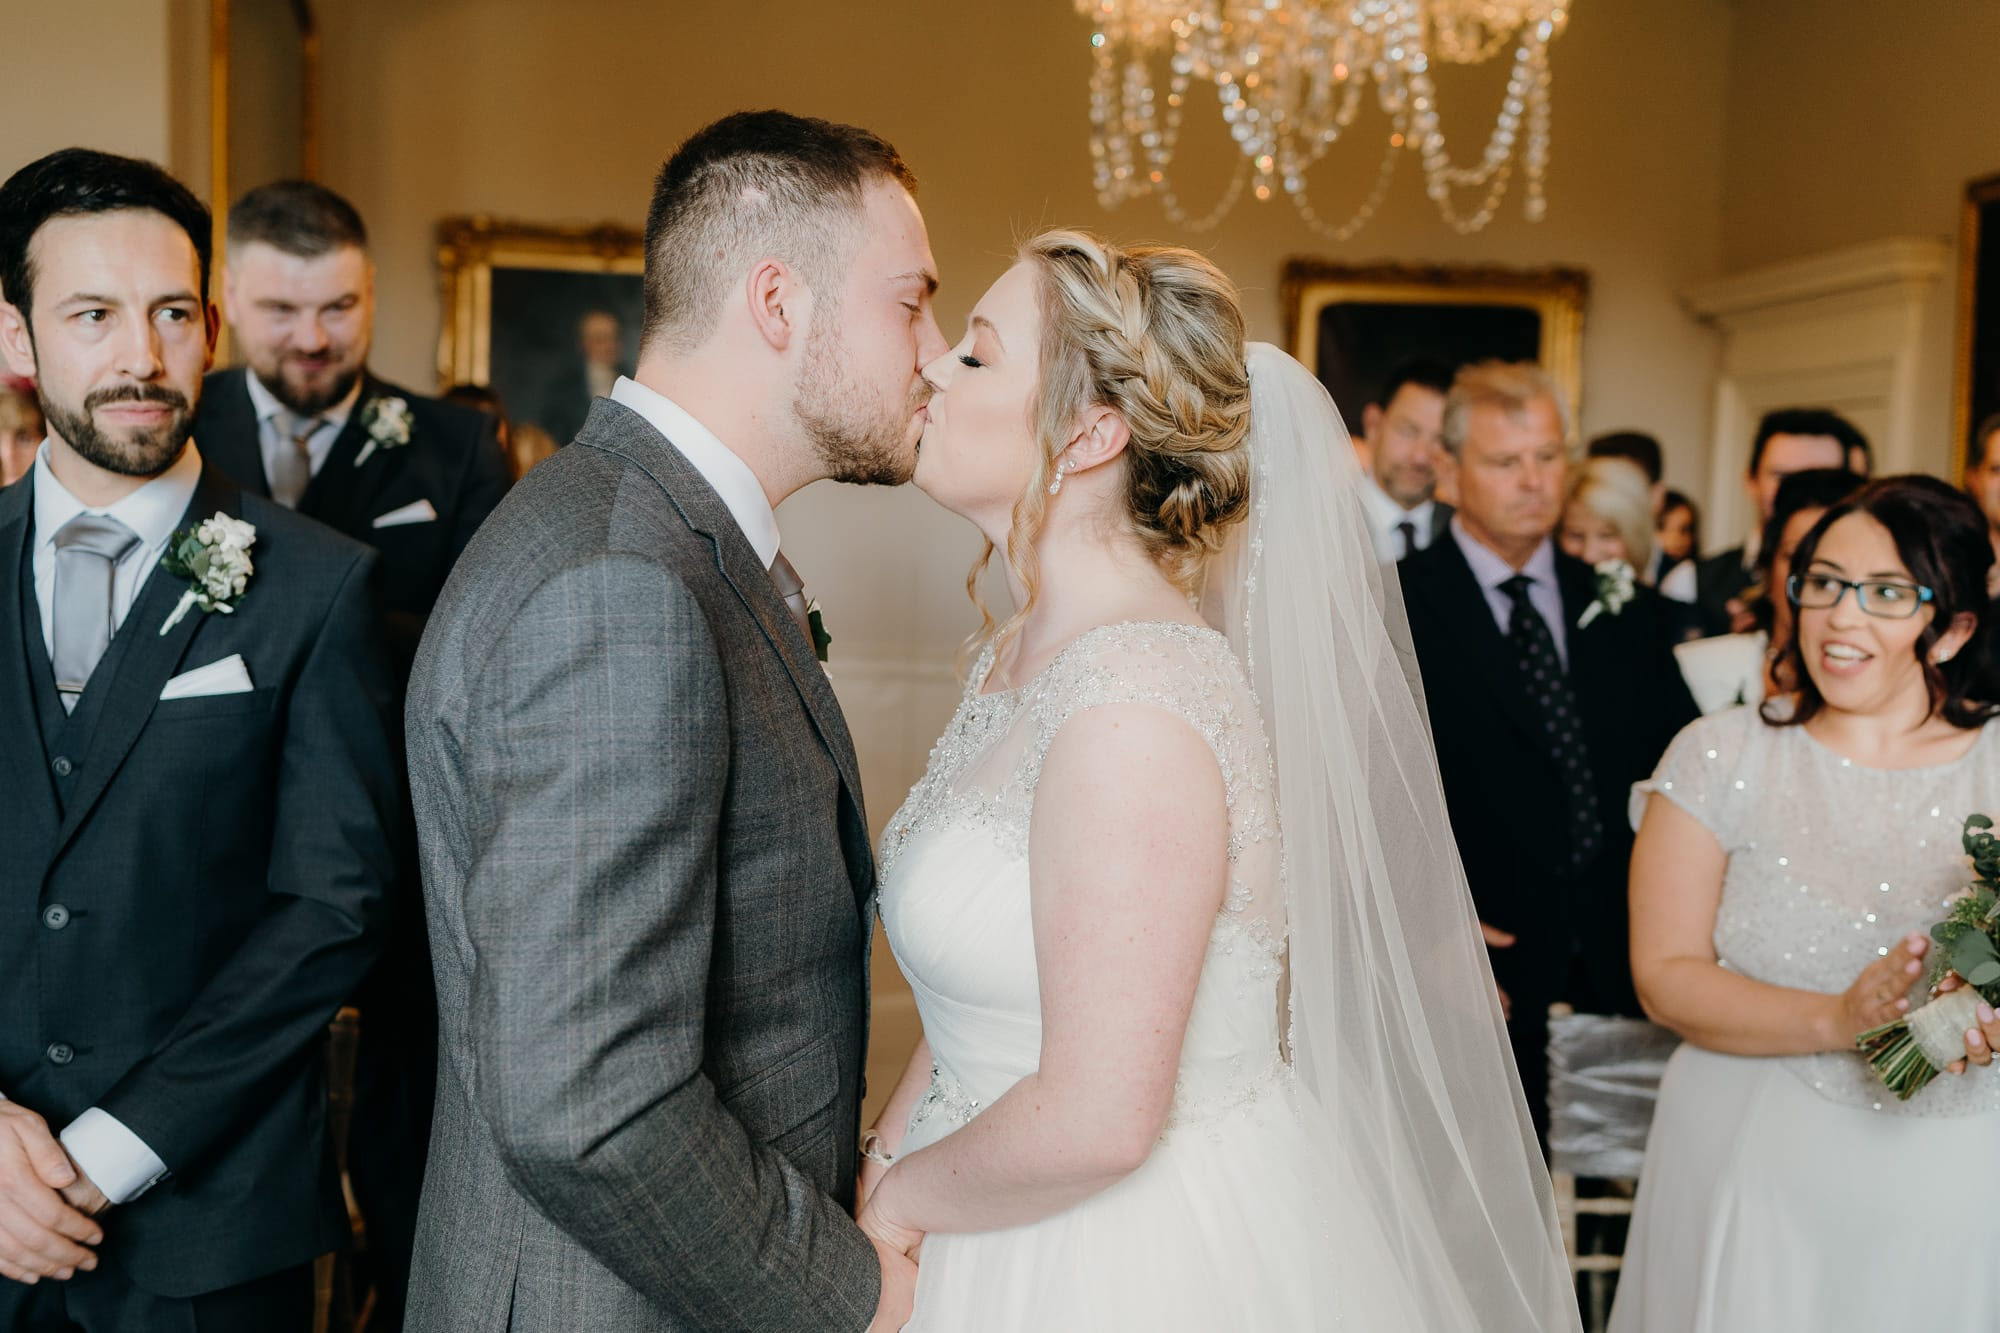 Wedding Photography at Norwood Park in Southwell Nottingham